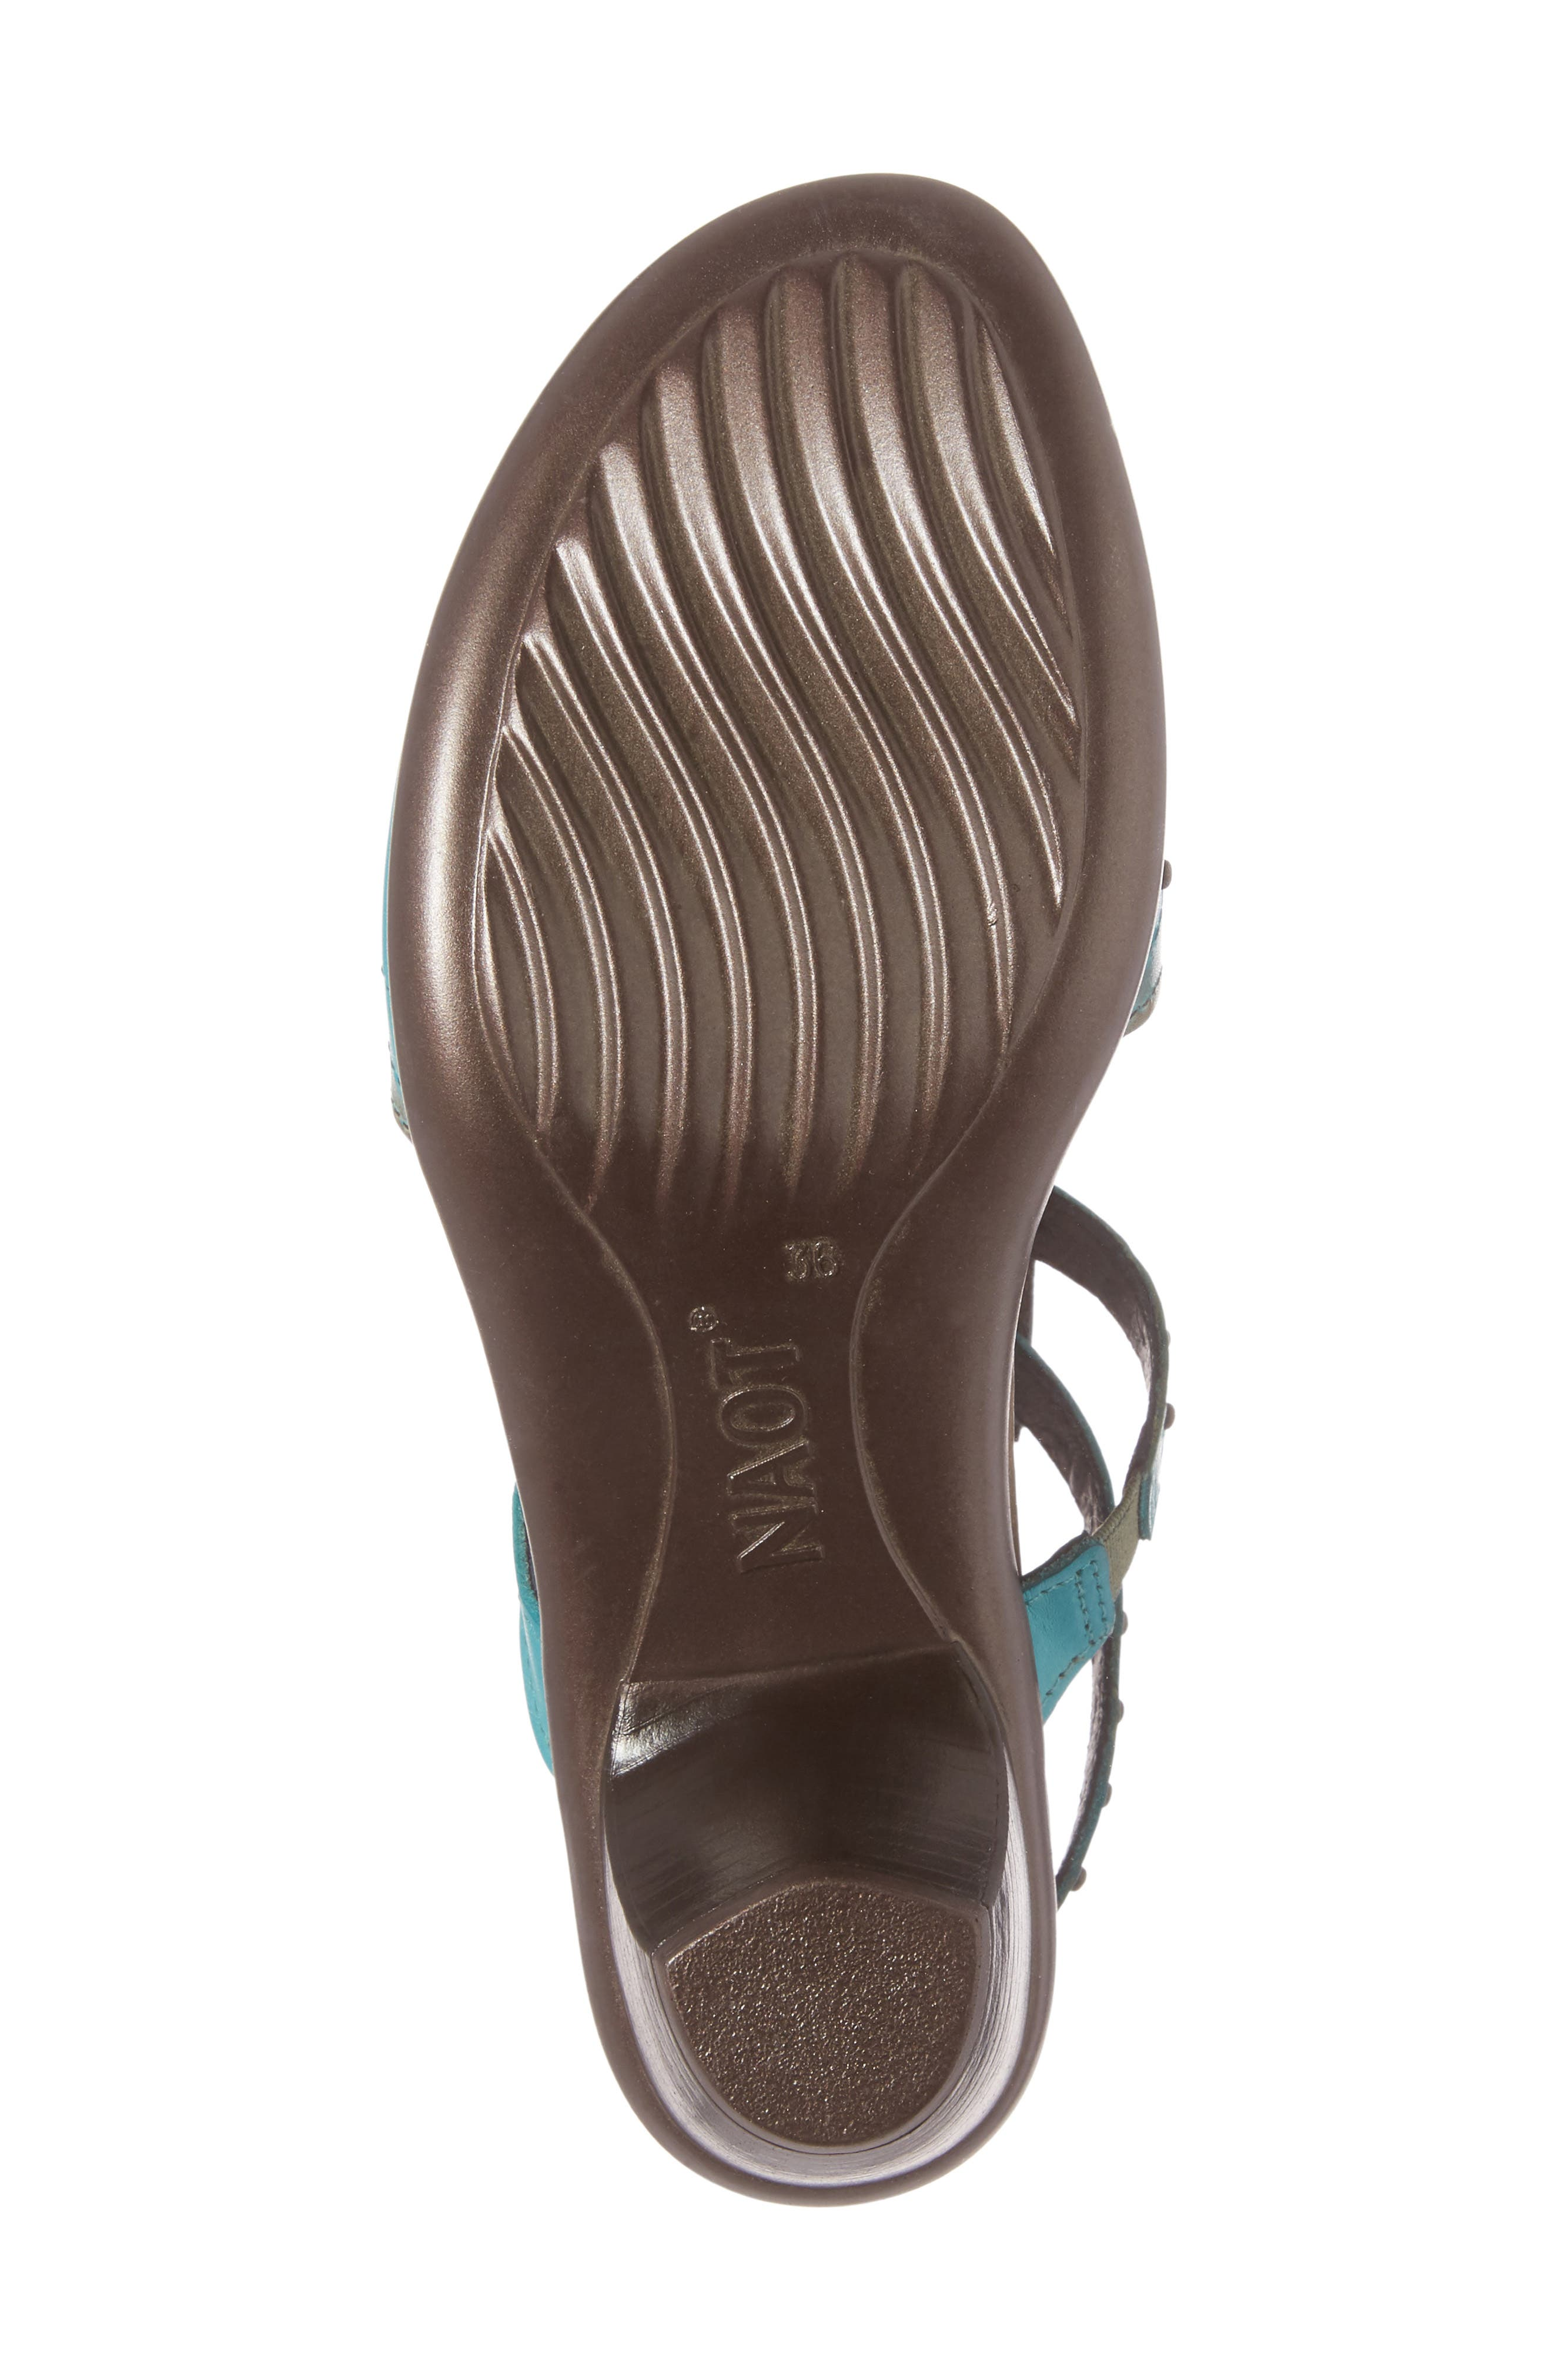 'Vogue' Sandal,                             Alternate thumbnail 6, color,                             TEAL BROWN LEATHER